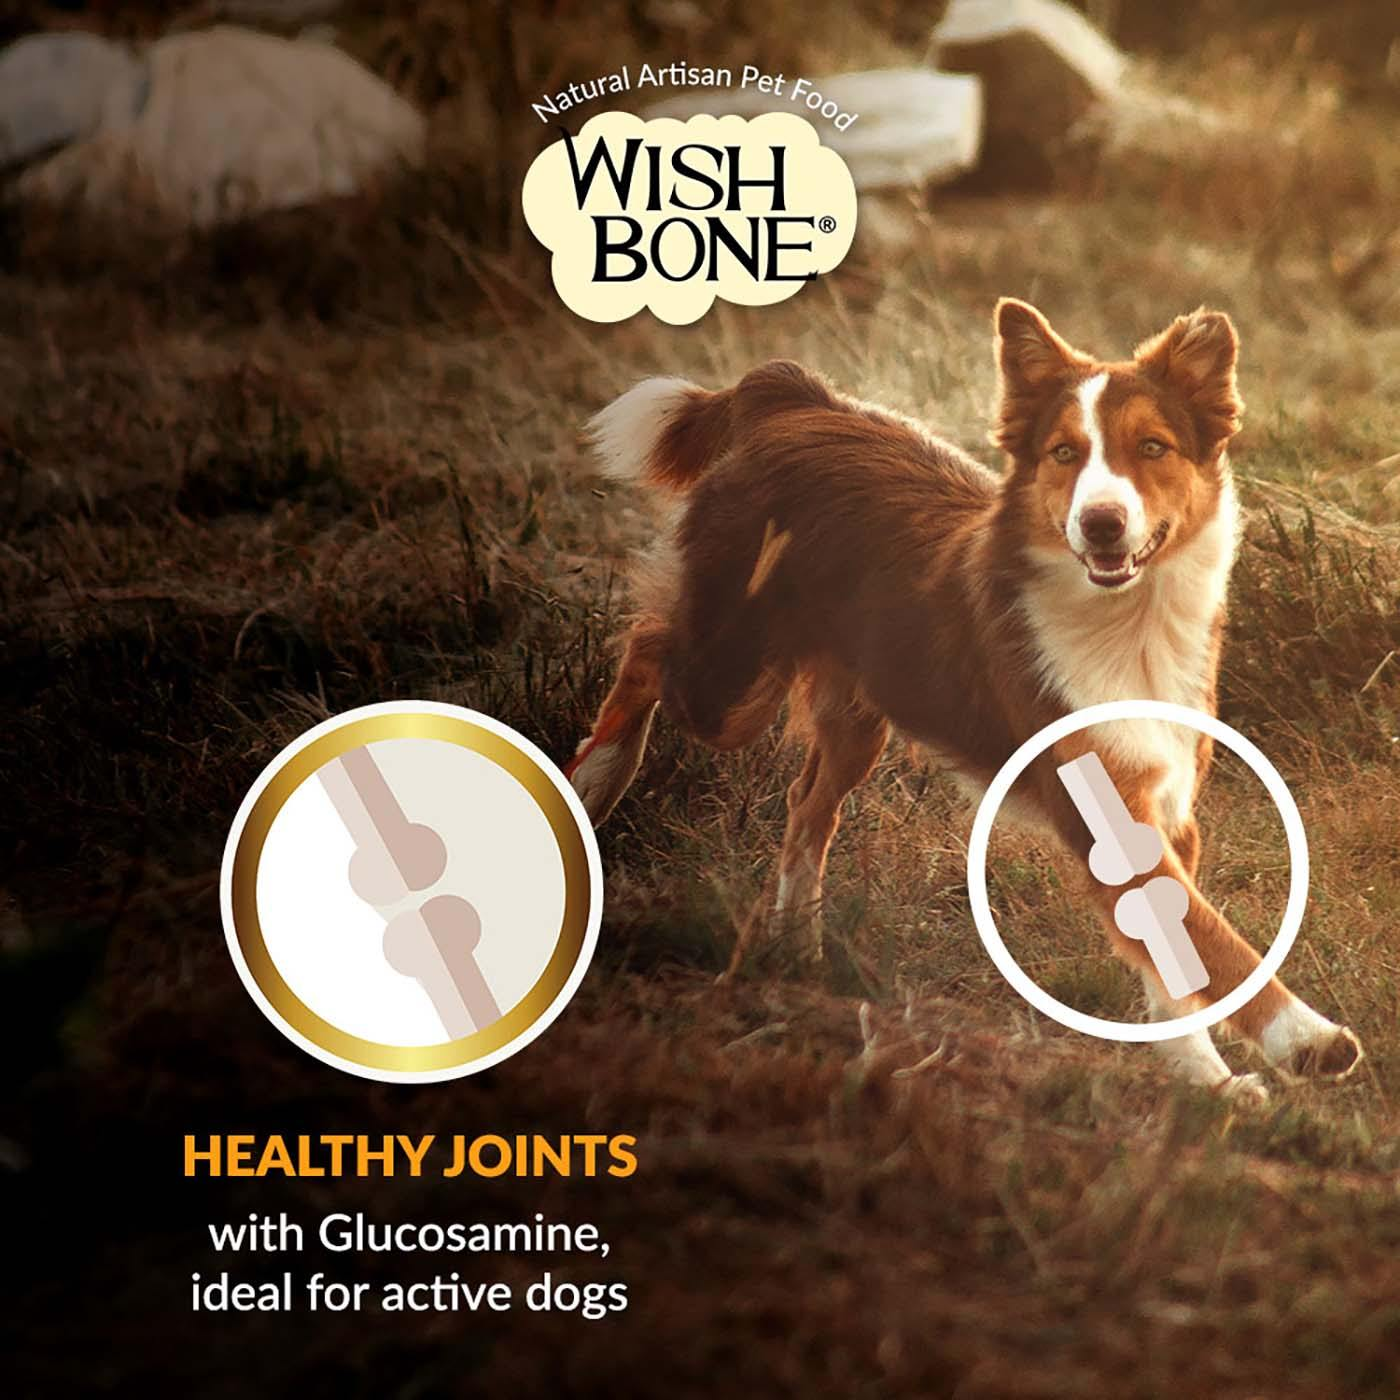 Wishbone Gold (Dog) 20kg/44lbs Healthy Joints